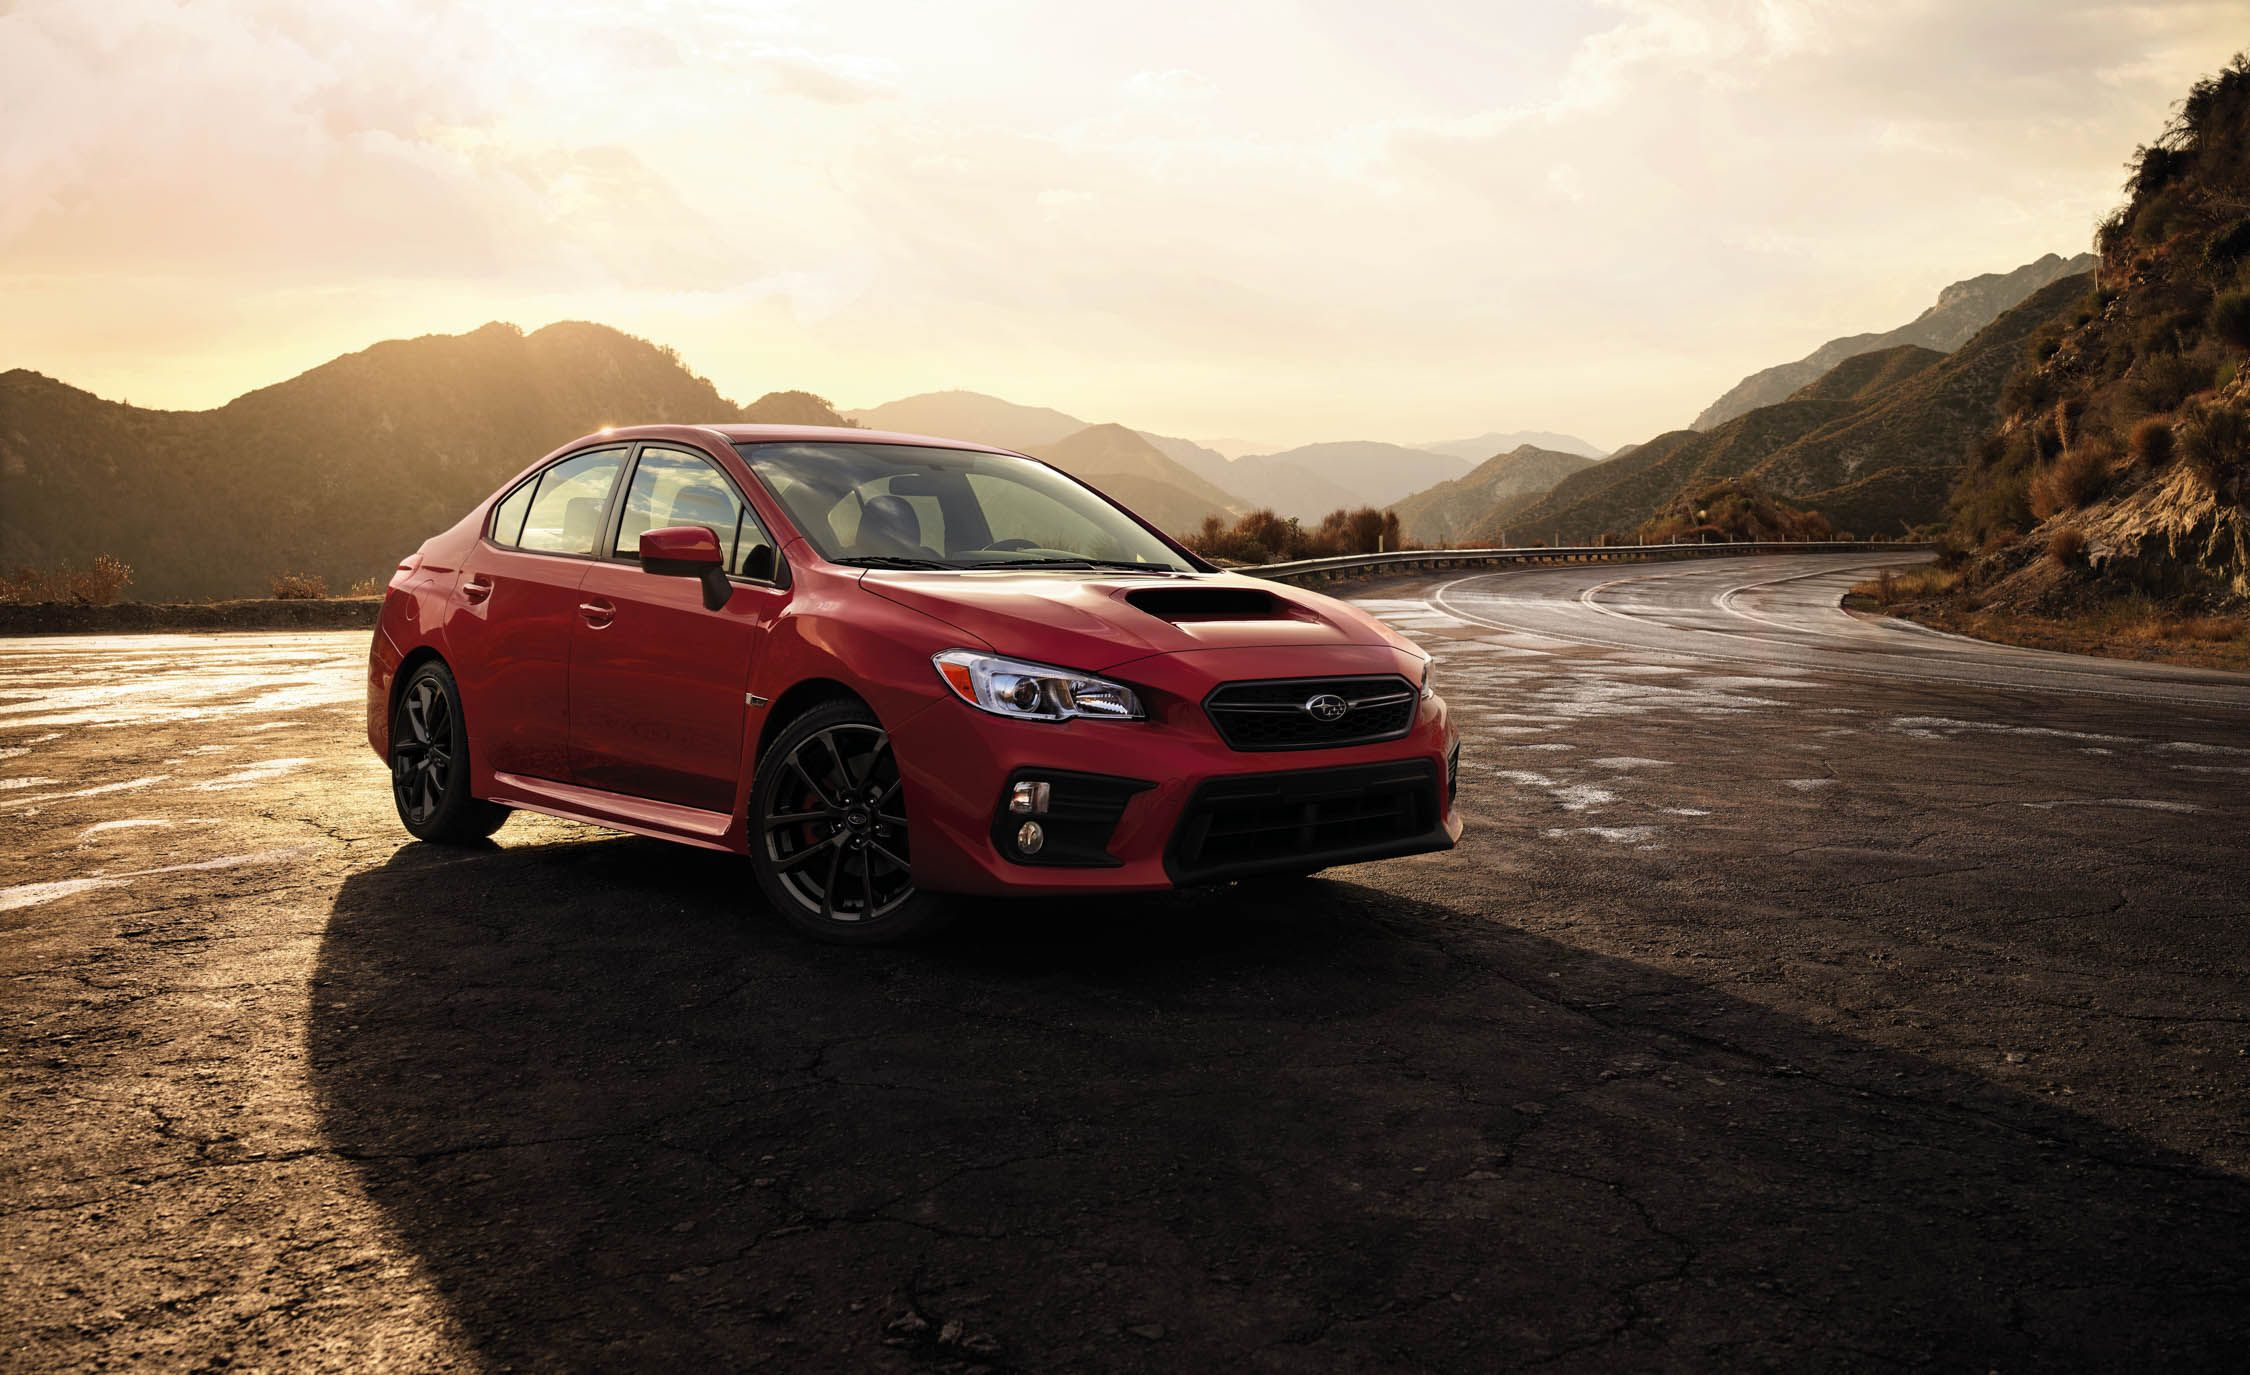 2018 Wrx Cvt 0 60 >> 2019 Subaru Wrx Reviews Subaru Wrx Price Photos And Specs Car